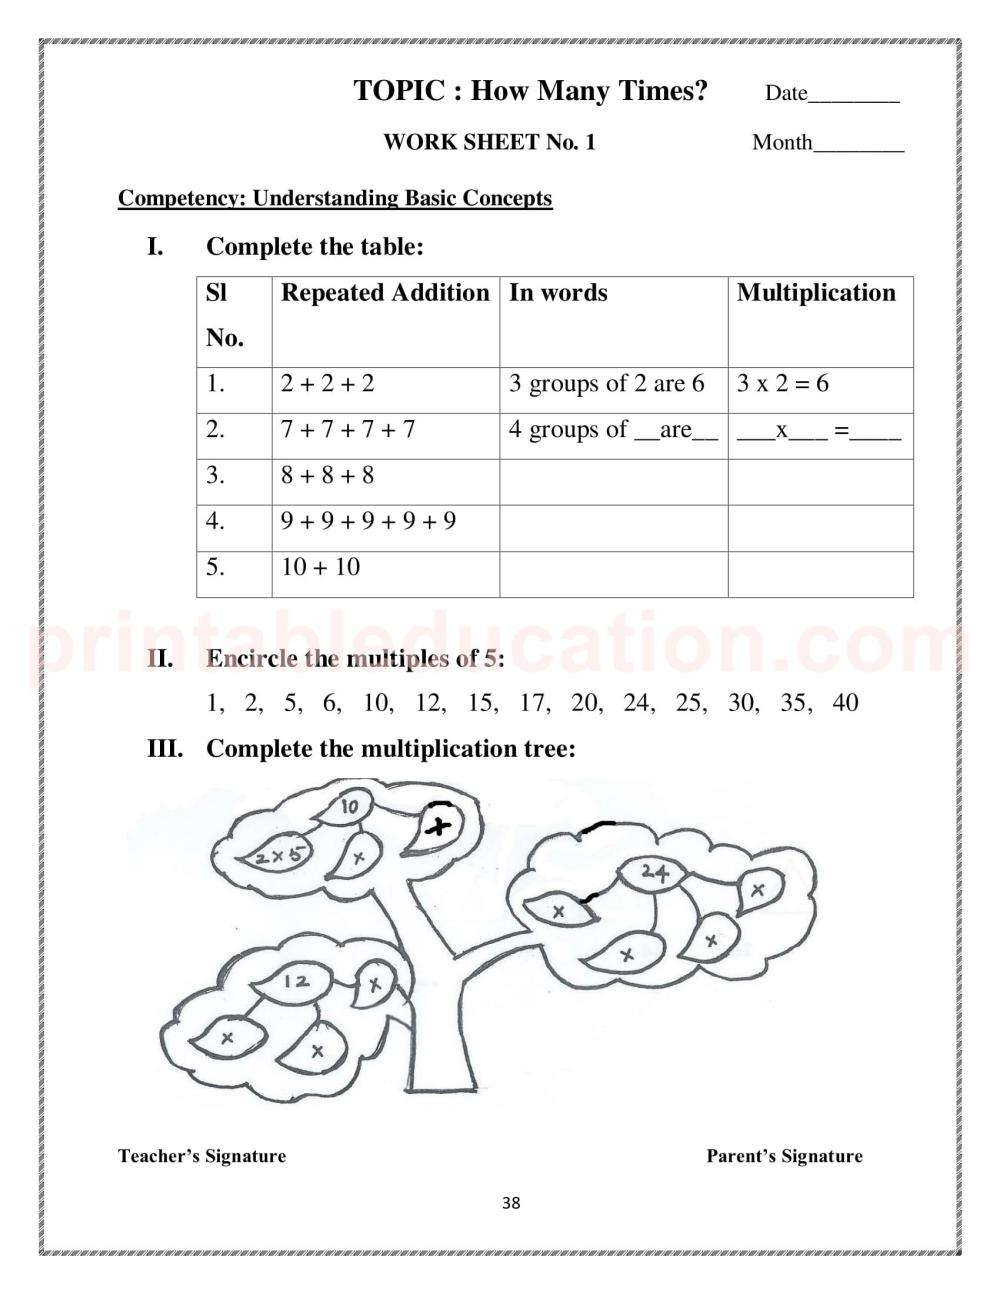 medium resolution of Mathematics Worksheets For Class 3 Kids   PrintablEducation